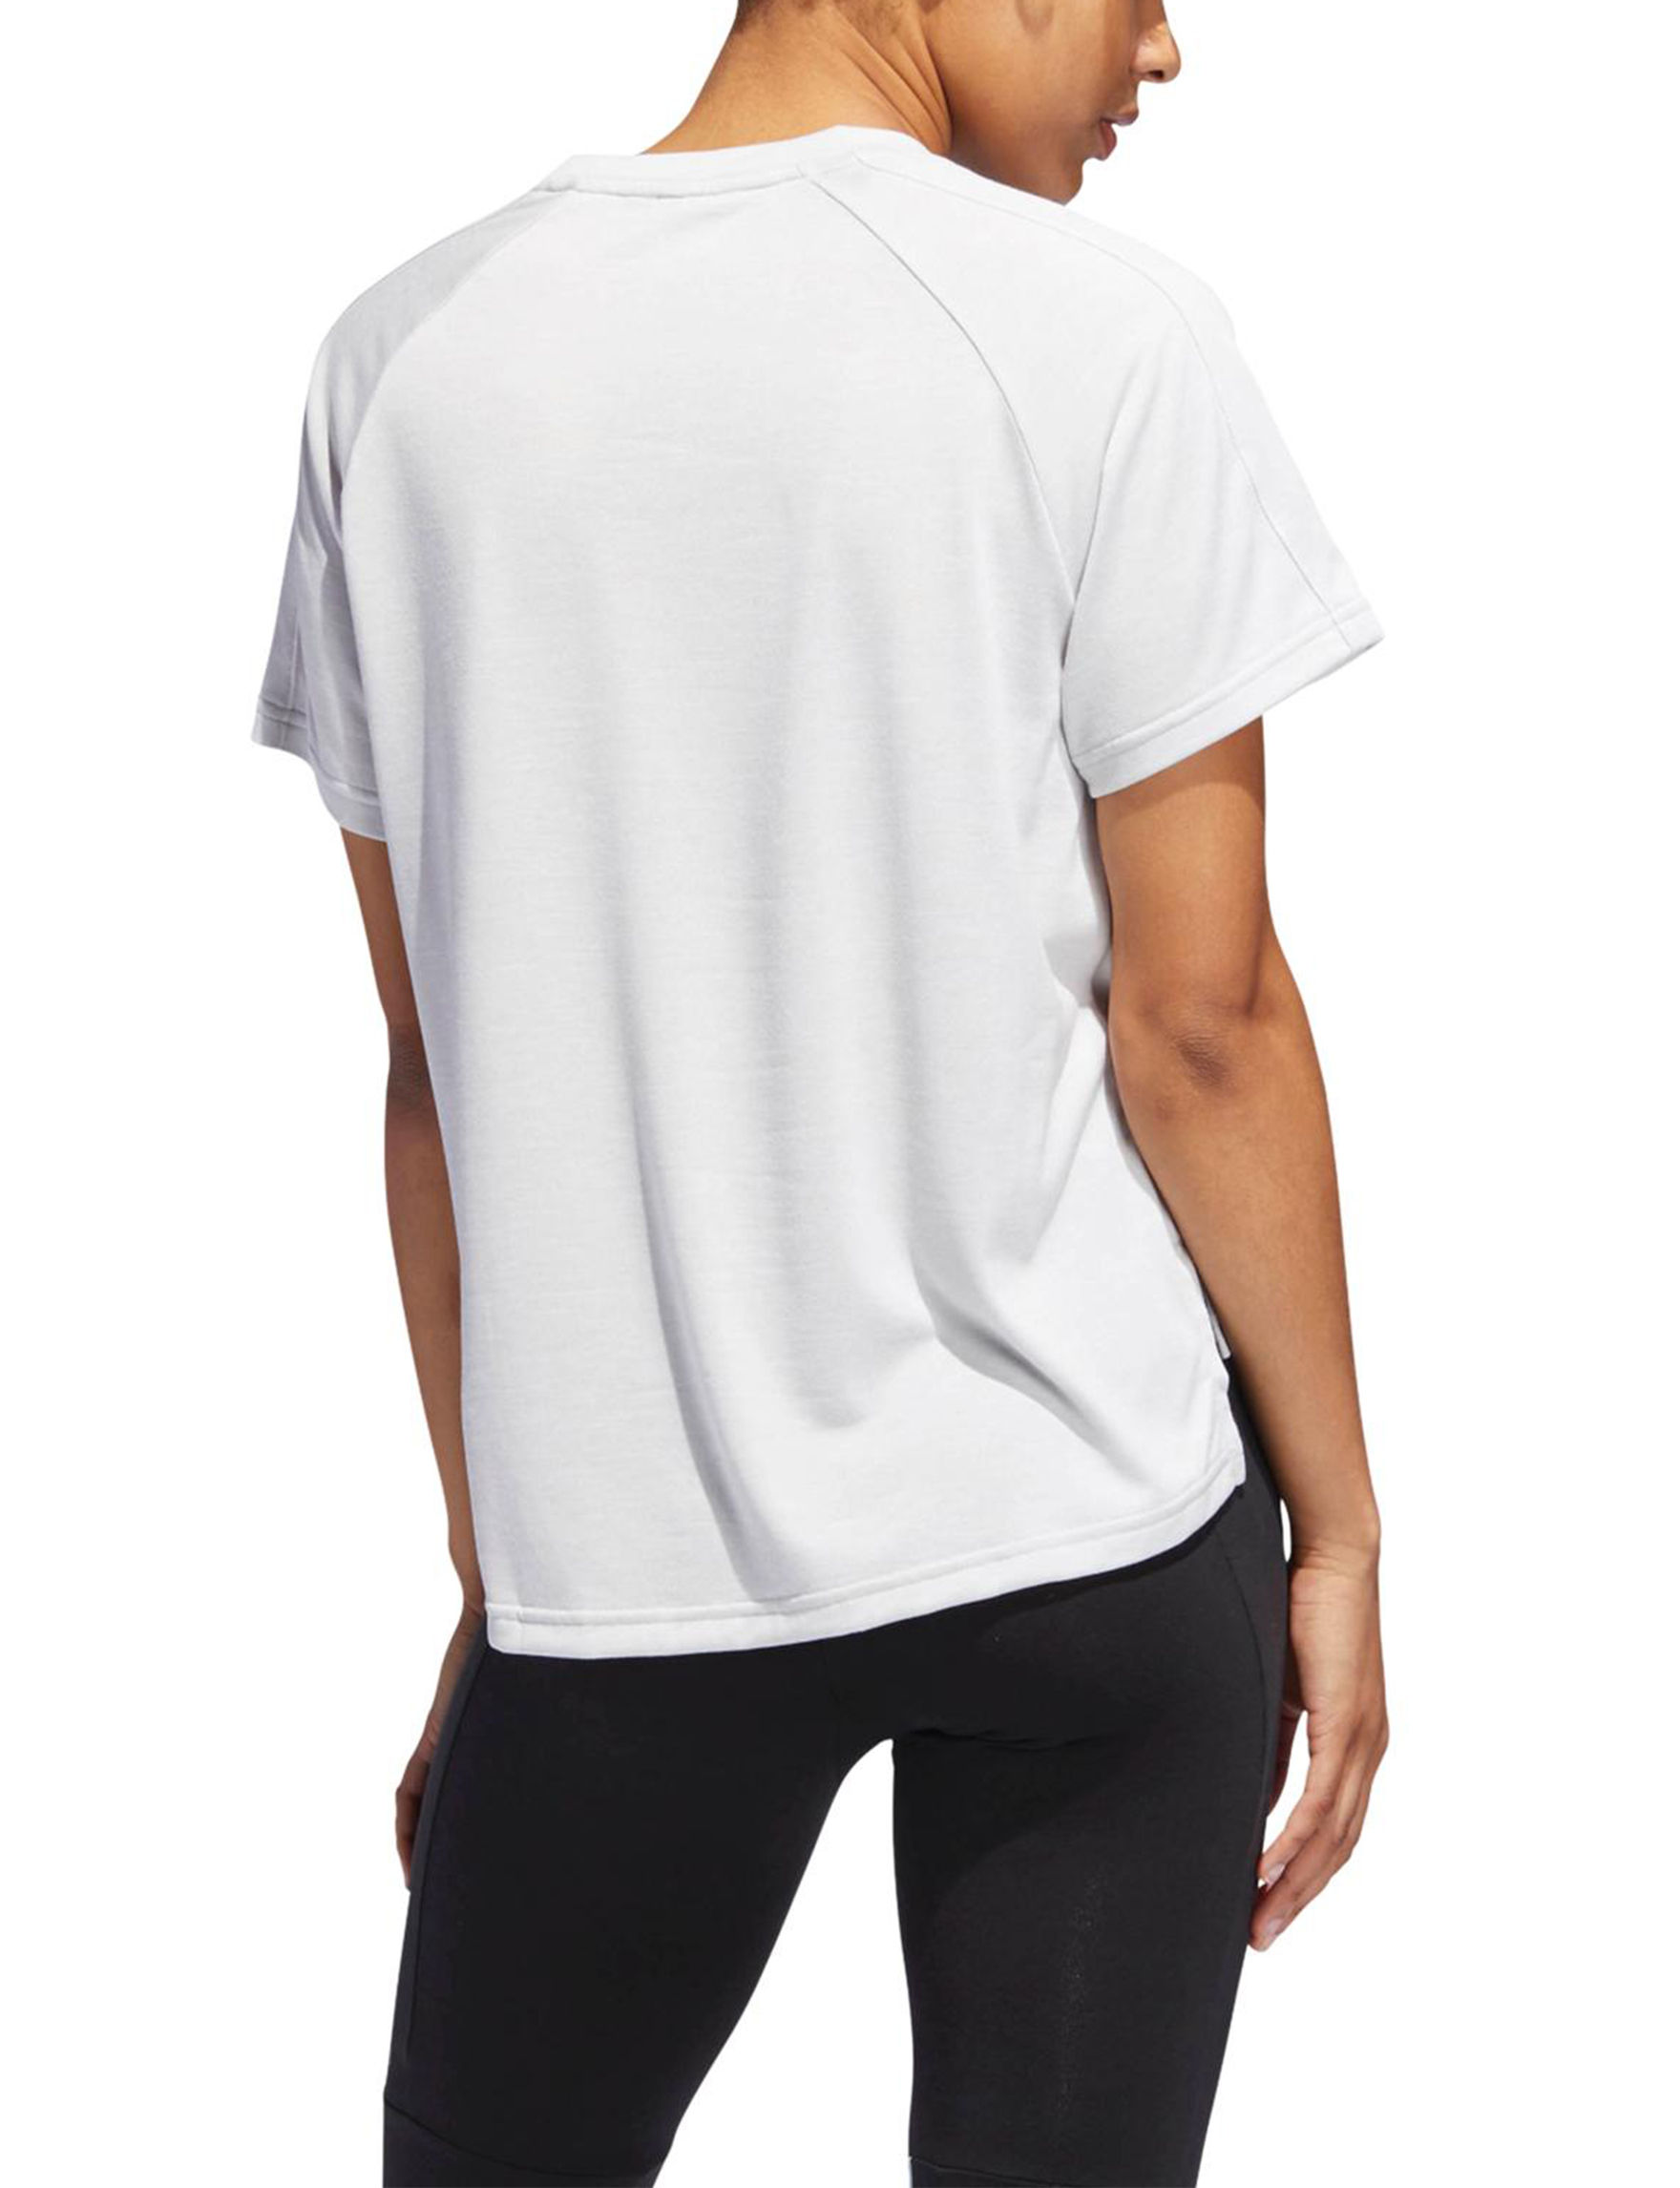 Adidas White / Black Tees & Tanks